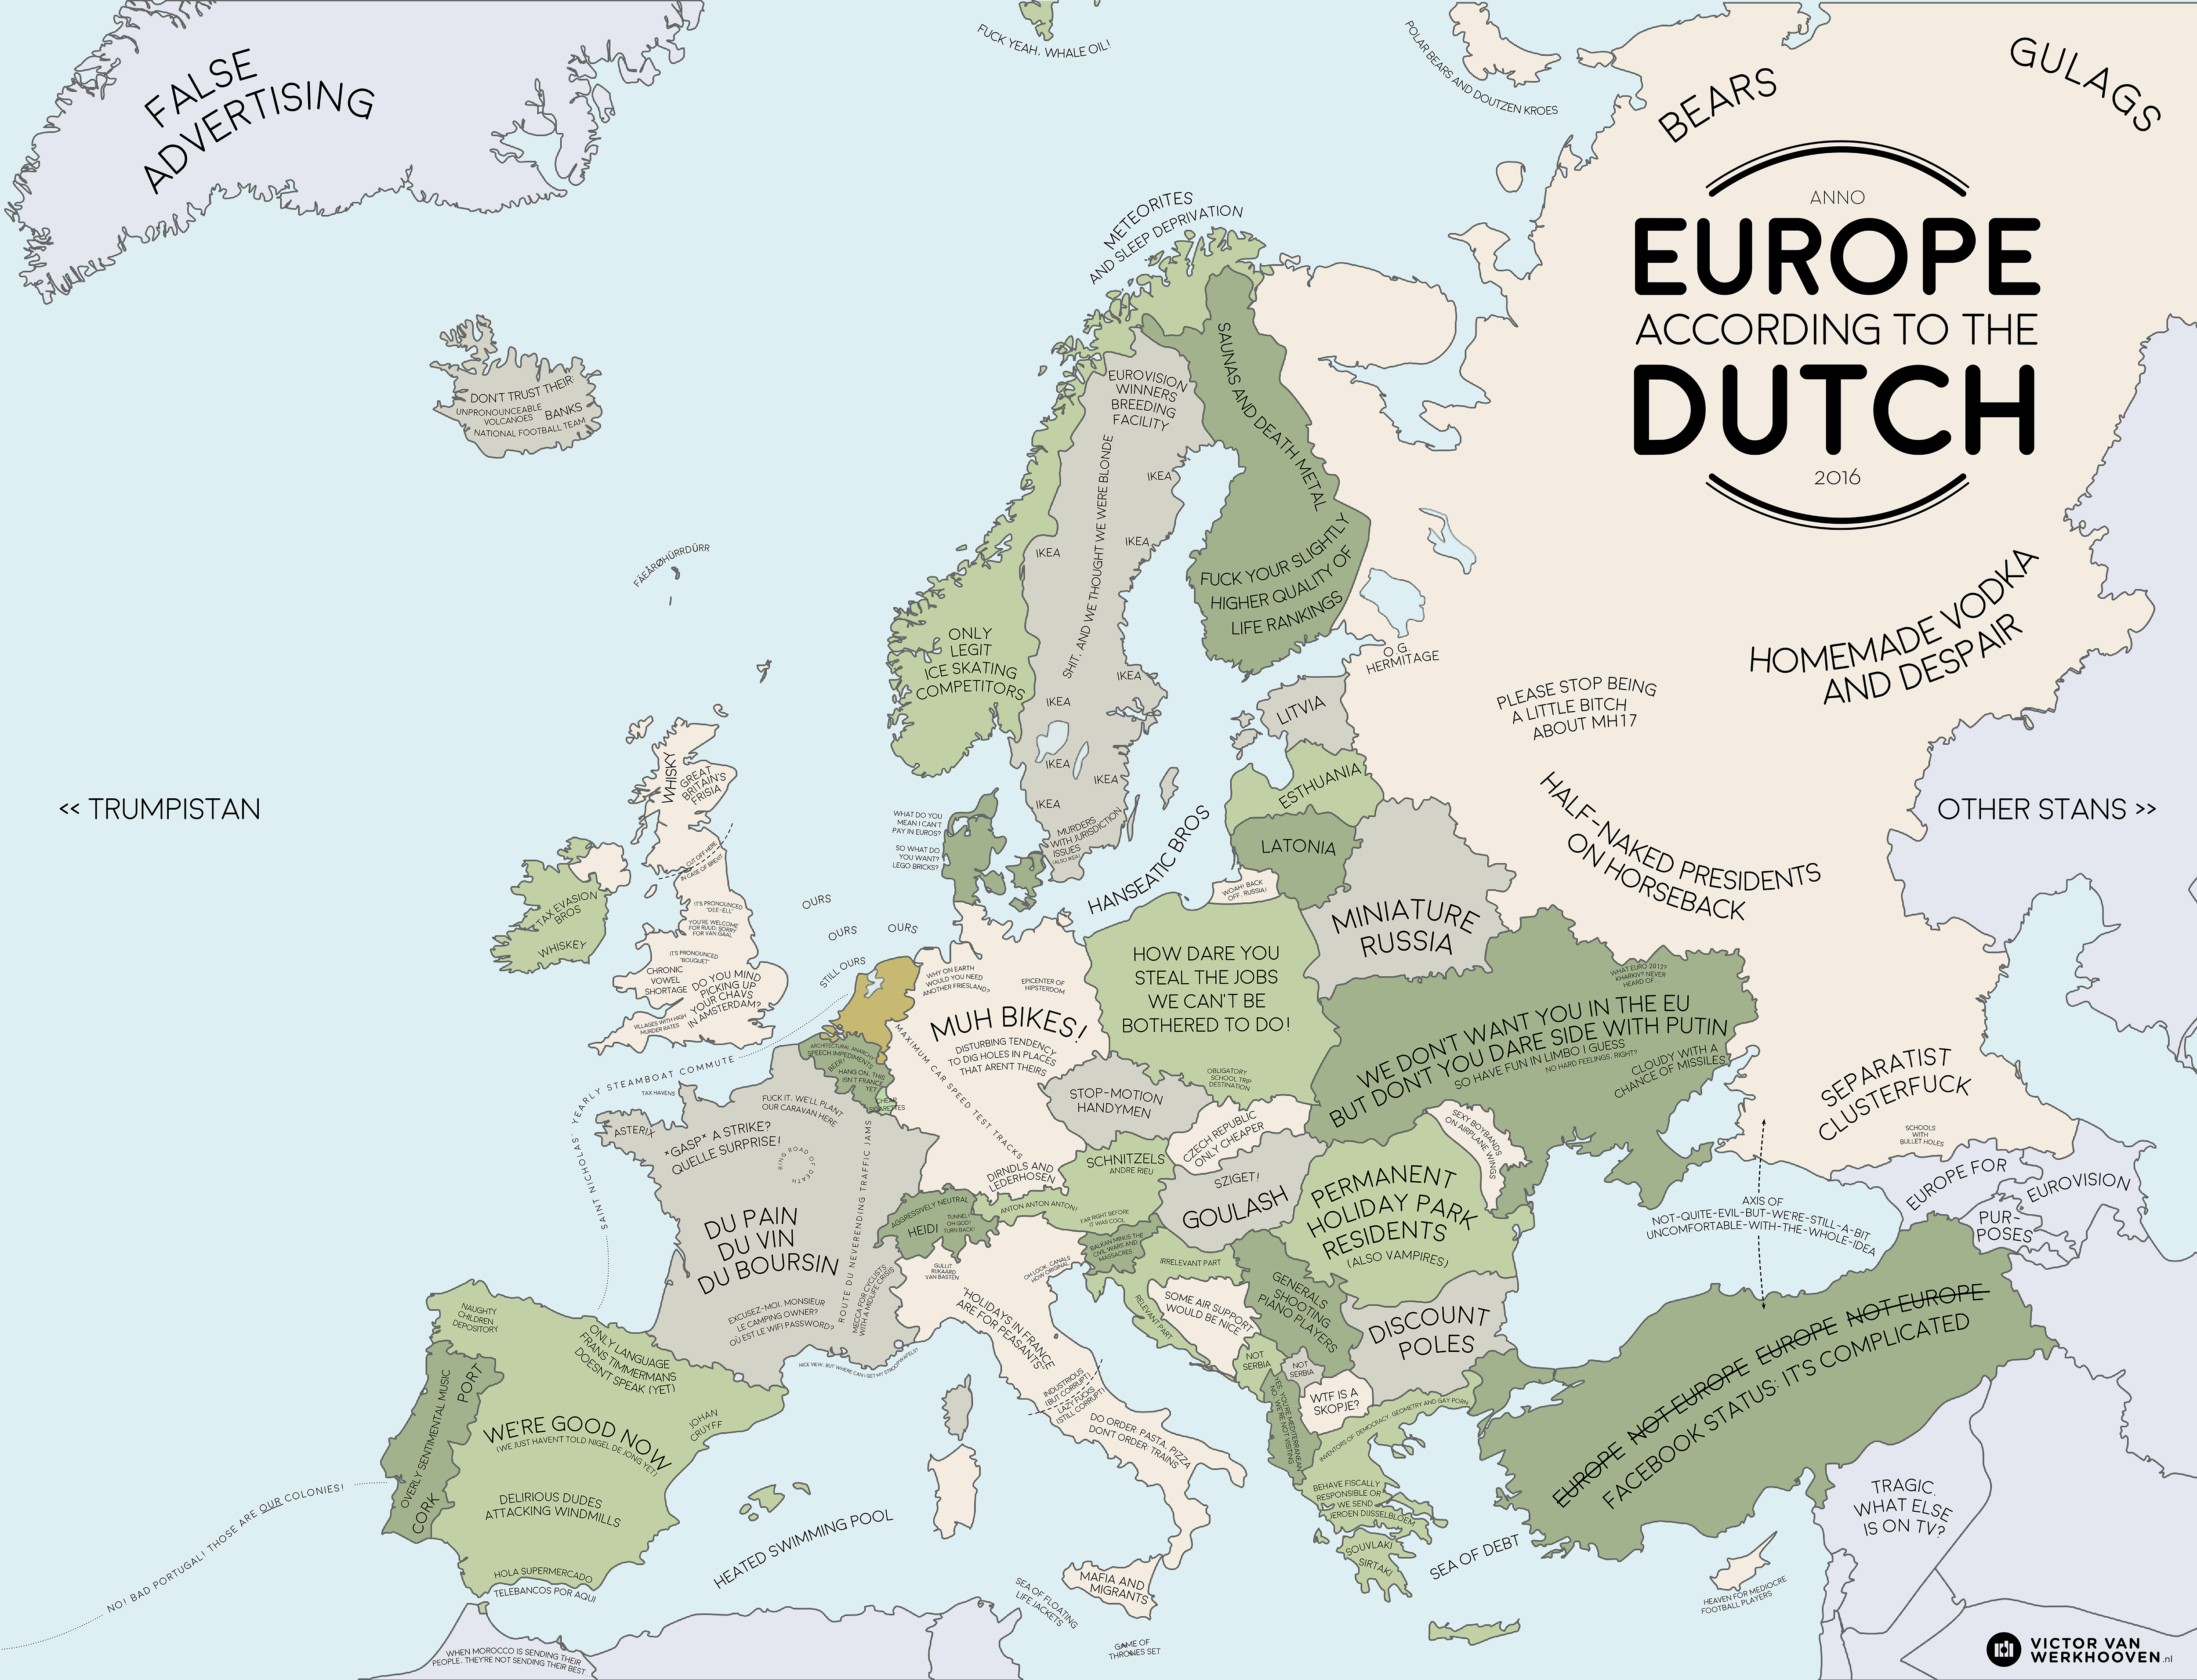 Europe according to the Dutch Europe